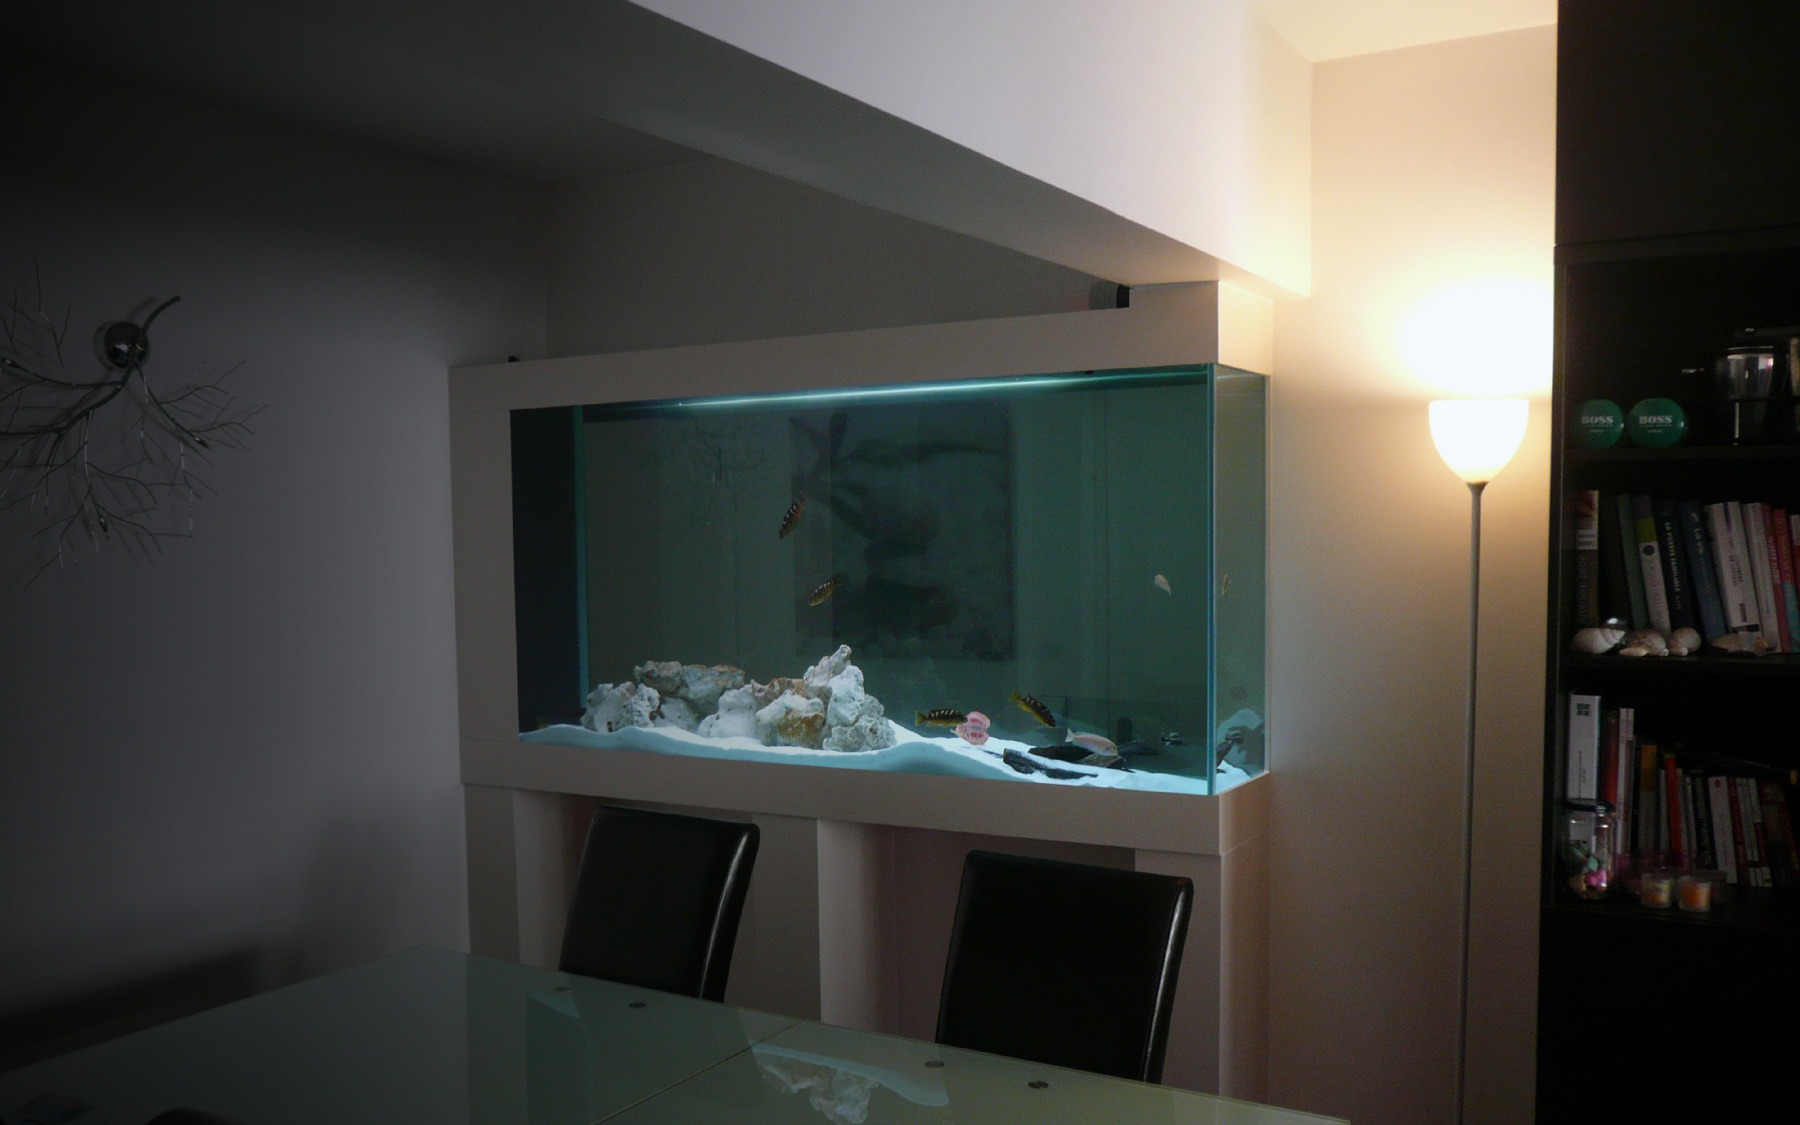 aquarium sur mesure de s 233 paration oc 233 an d interieur